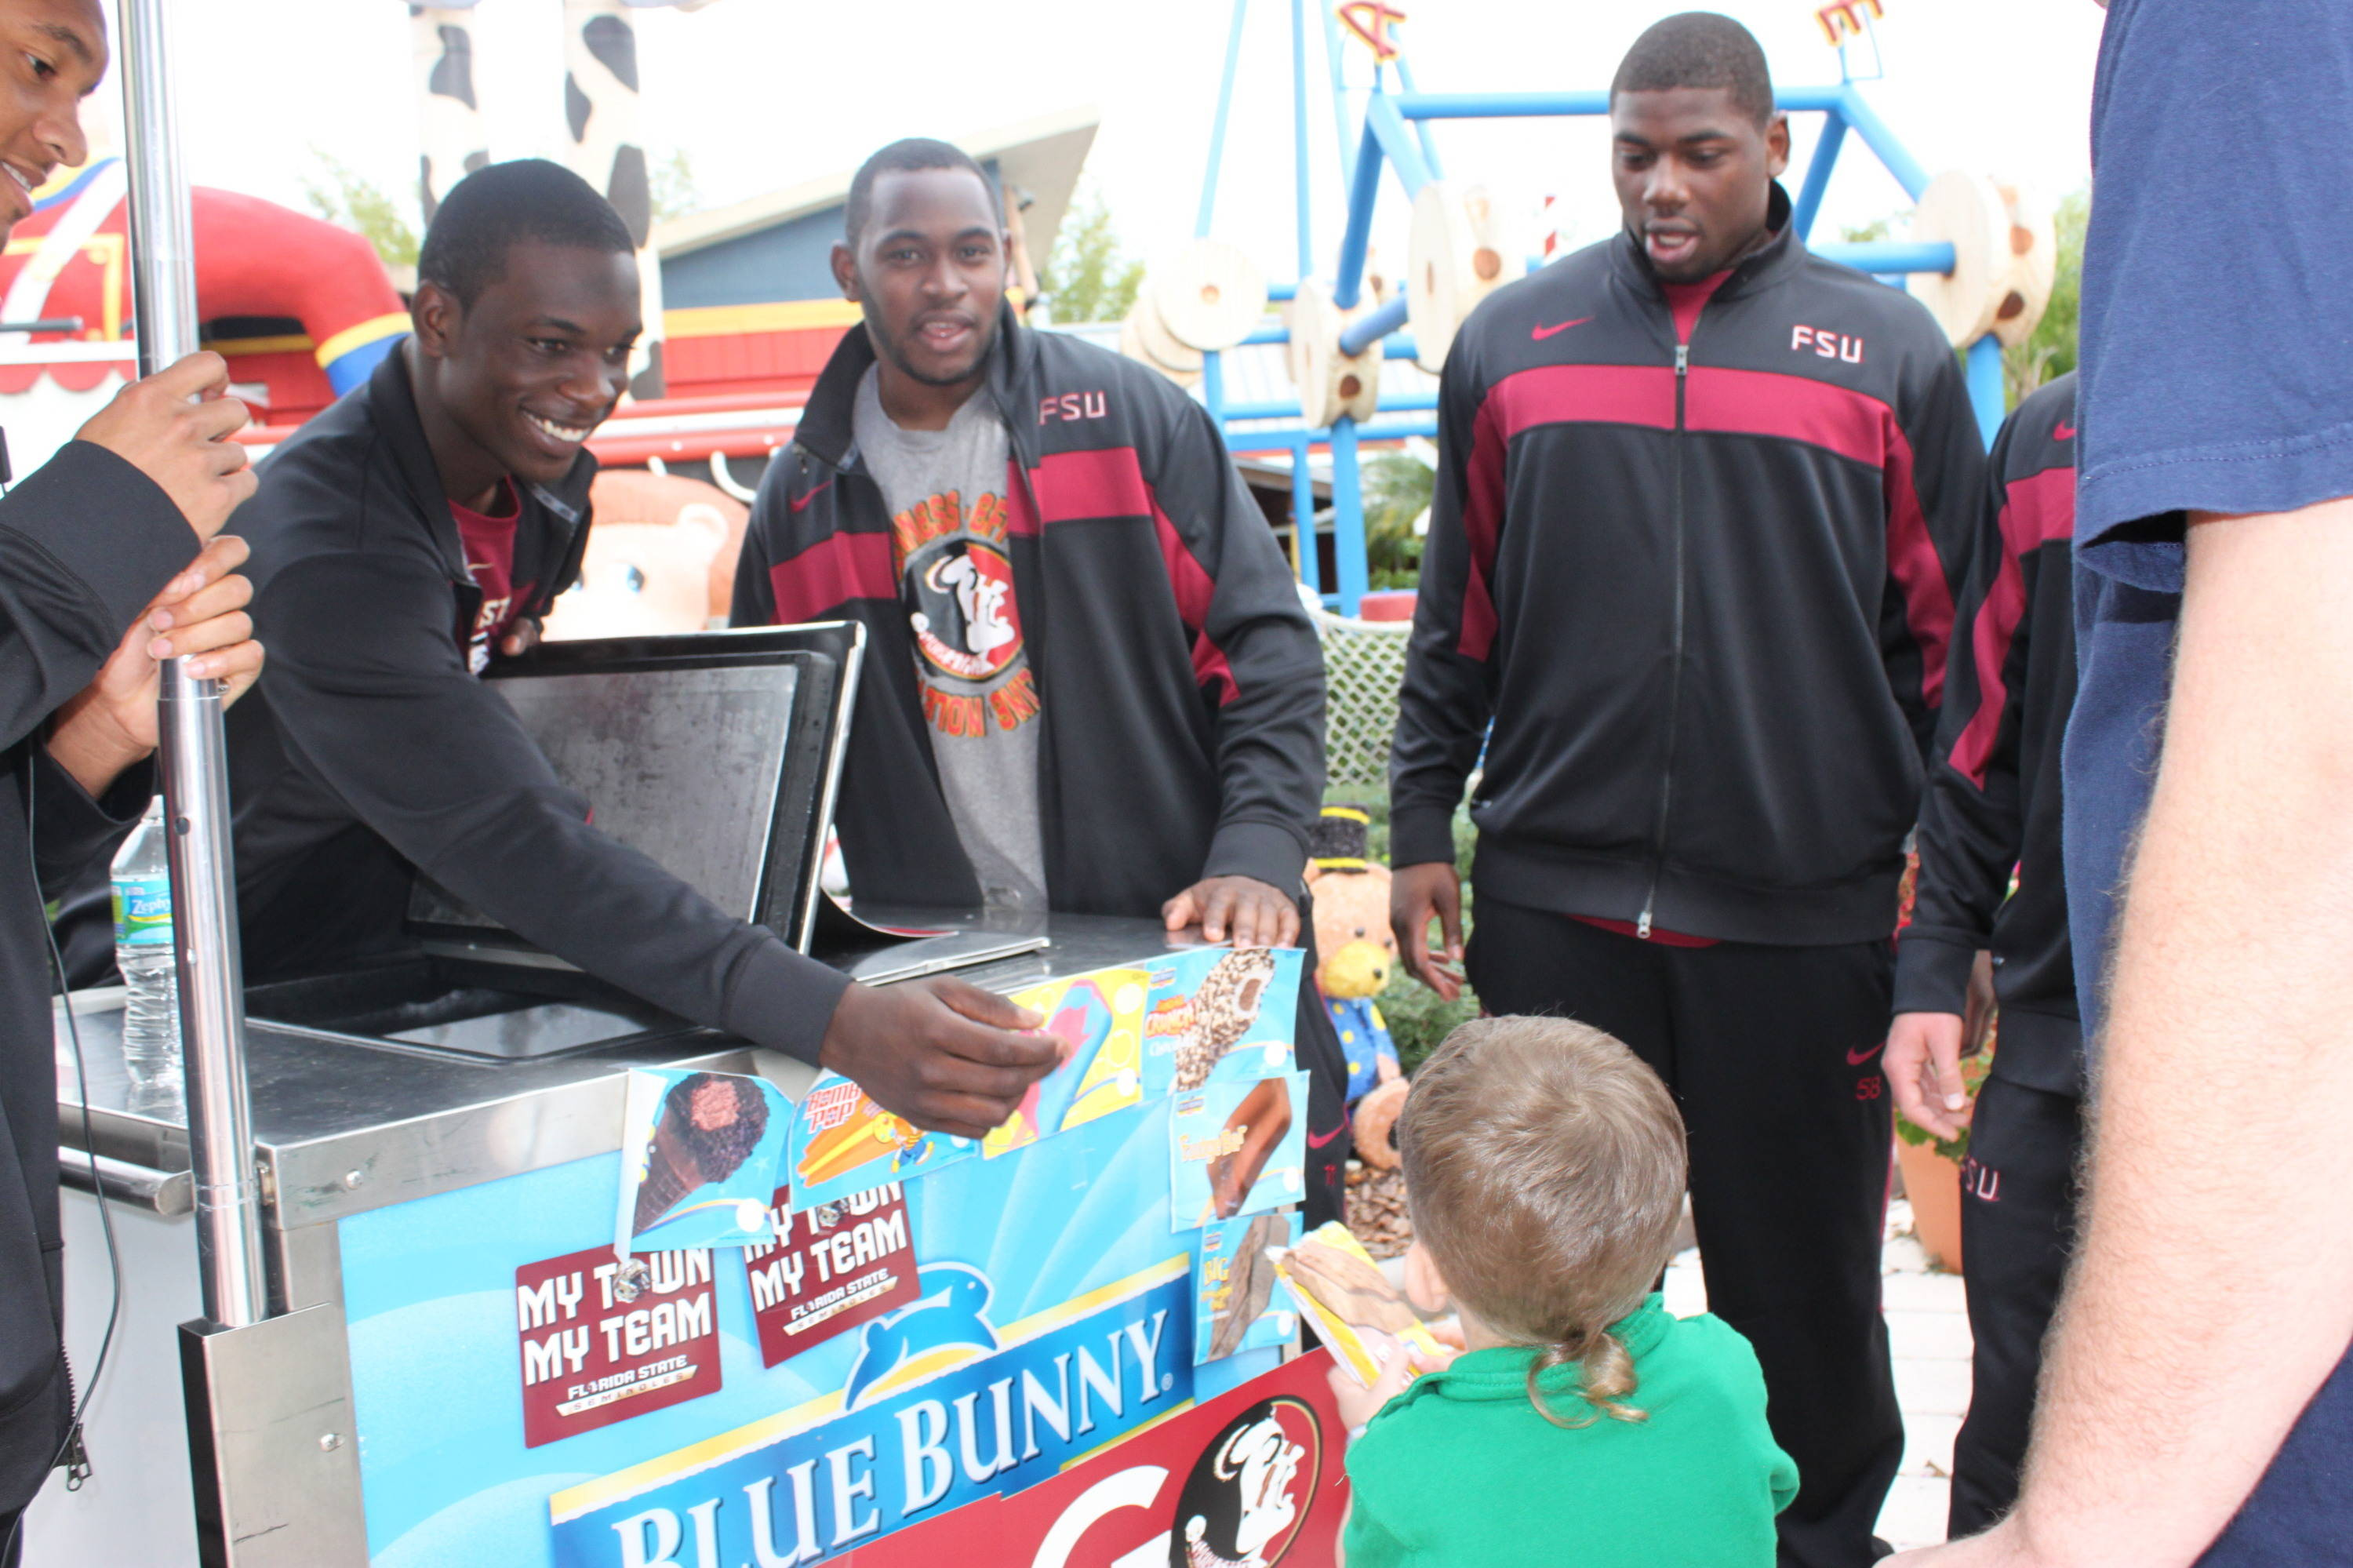 Telvin Smith, Vince Williams and Dan Hicks know the Ice Cream man is always a favorite with kids.